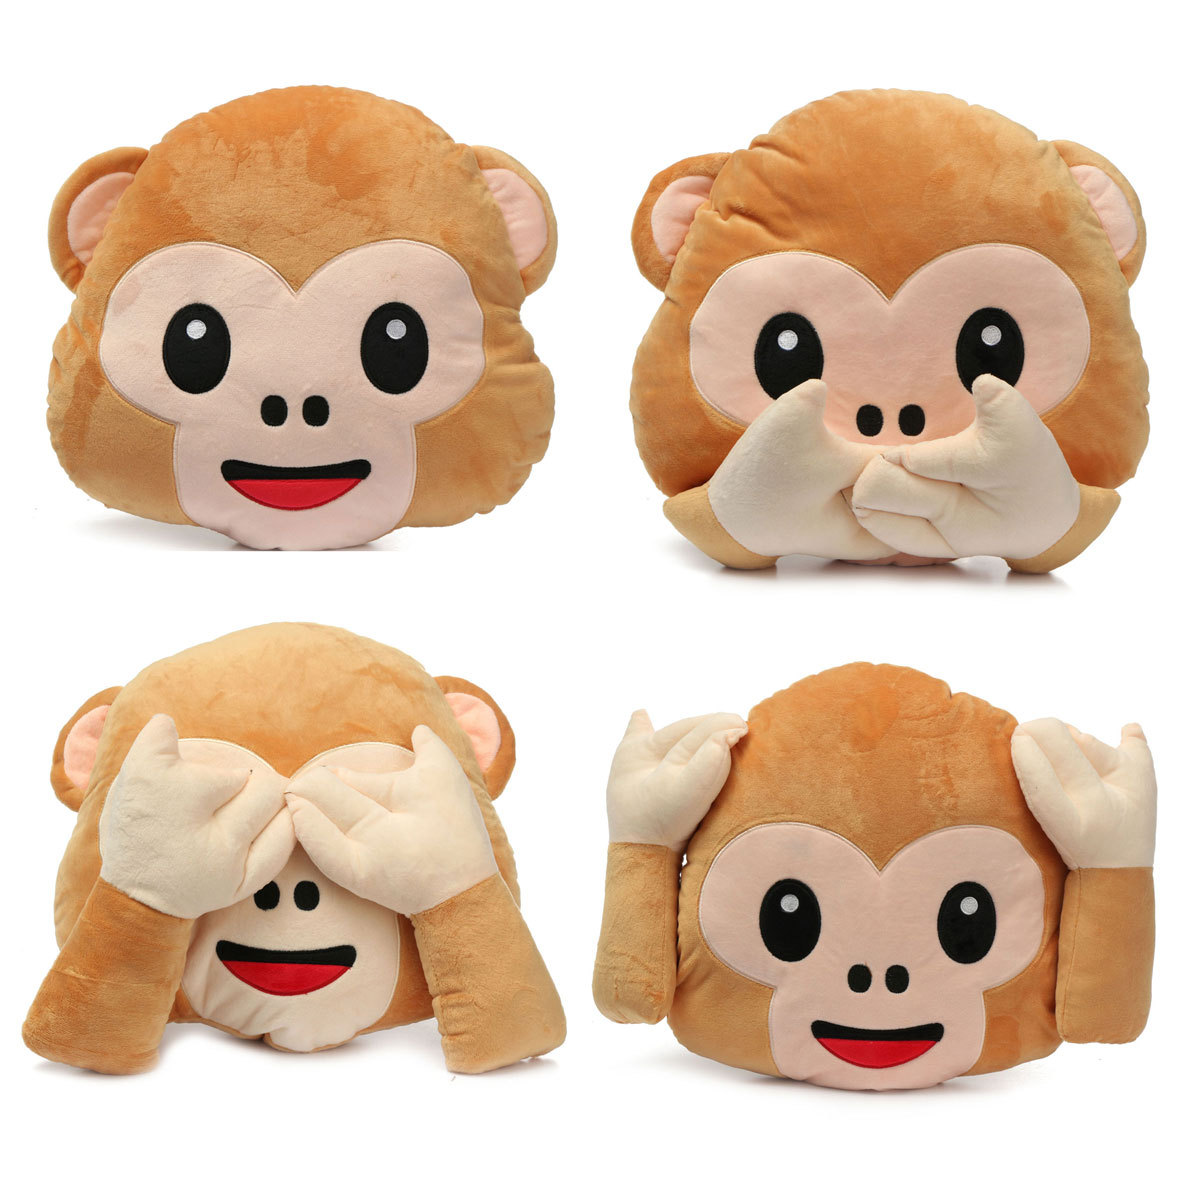 LM Lovely Plush Toys Monkey Pillow Stuffed Toy Office Home Sofa Decoration Gift